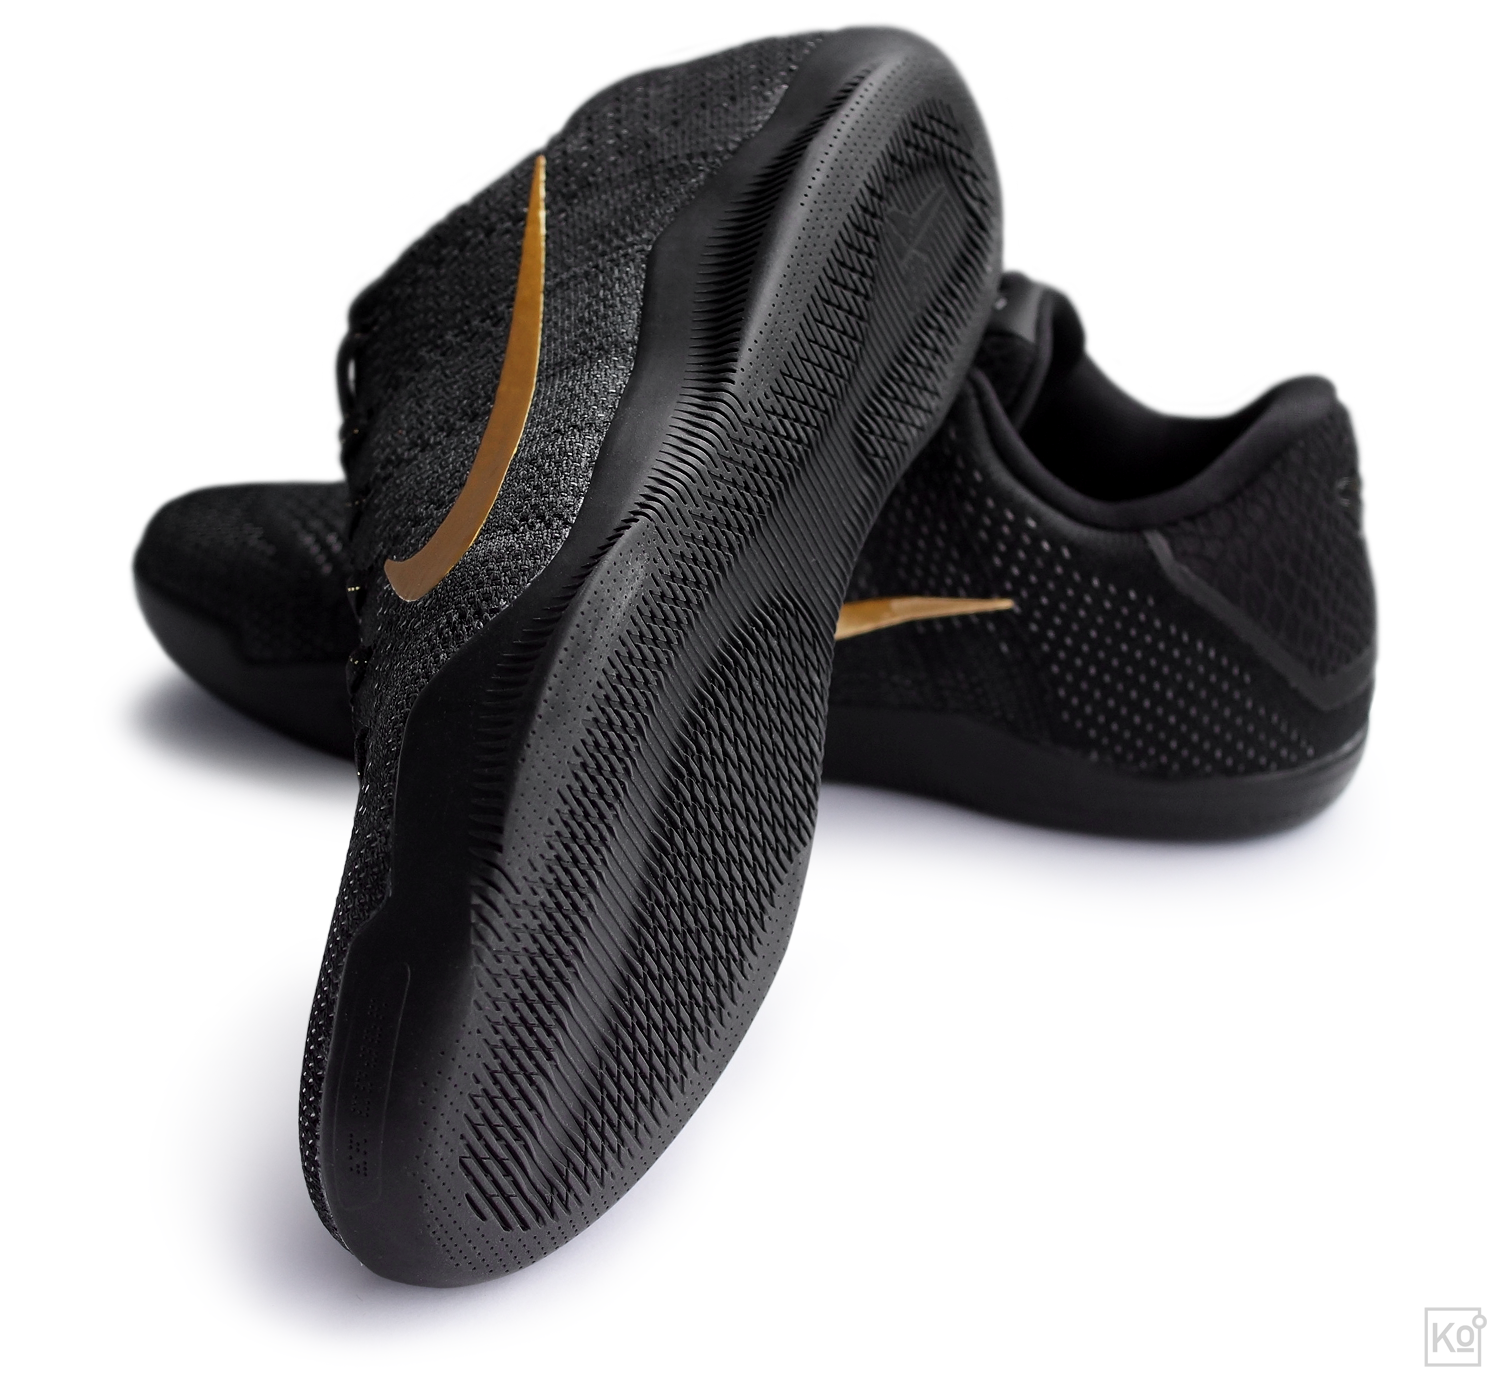 figure 7.  Beautiful outsoles have been a hallmark of the Kobe line, and the Kobe XI Elite's rubber holds to that tradition. What I particularly like about this iteration is the artful blending of lateral outriggers along both the forefoot and cuboid regions of the foot. This is a very elegant way to enhance lateral stability without adding a lot of bulk or weight to the shoe. I haven't spent enough time playing in the XI Elite myself to comment on traction, but the performance reviews I've read suggest that it can vary greatly based on your playing surface, with the XI's tread not faring particularly well on dusty courts.